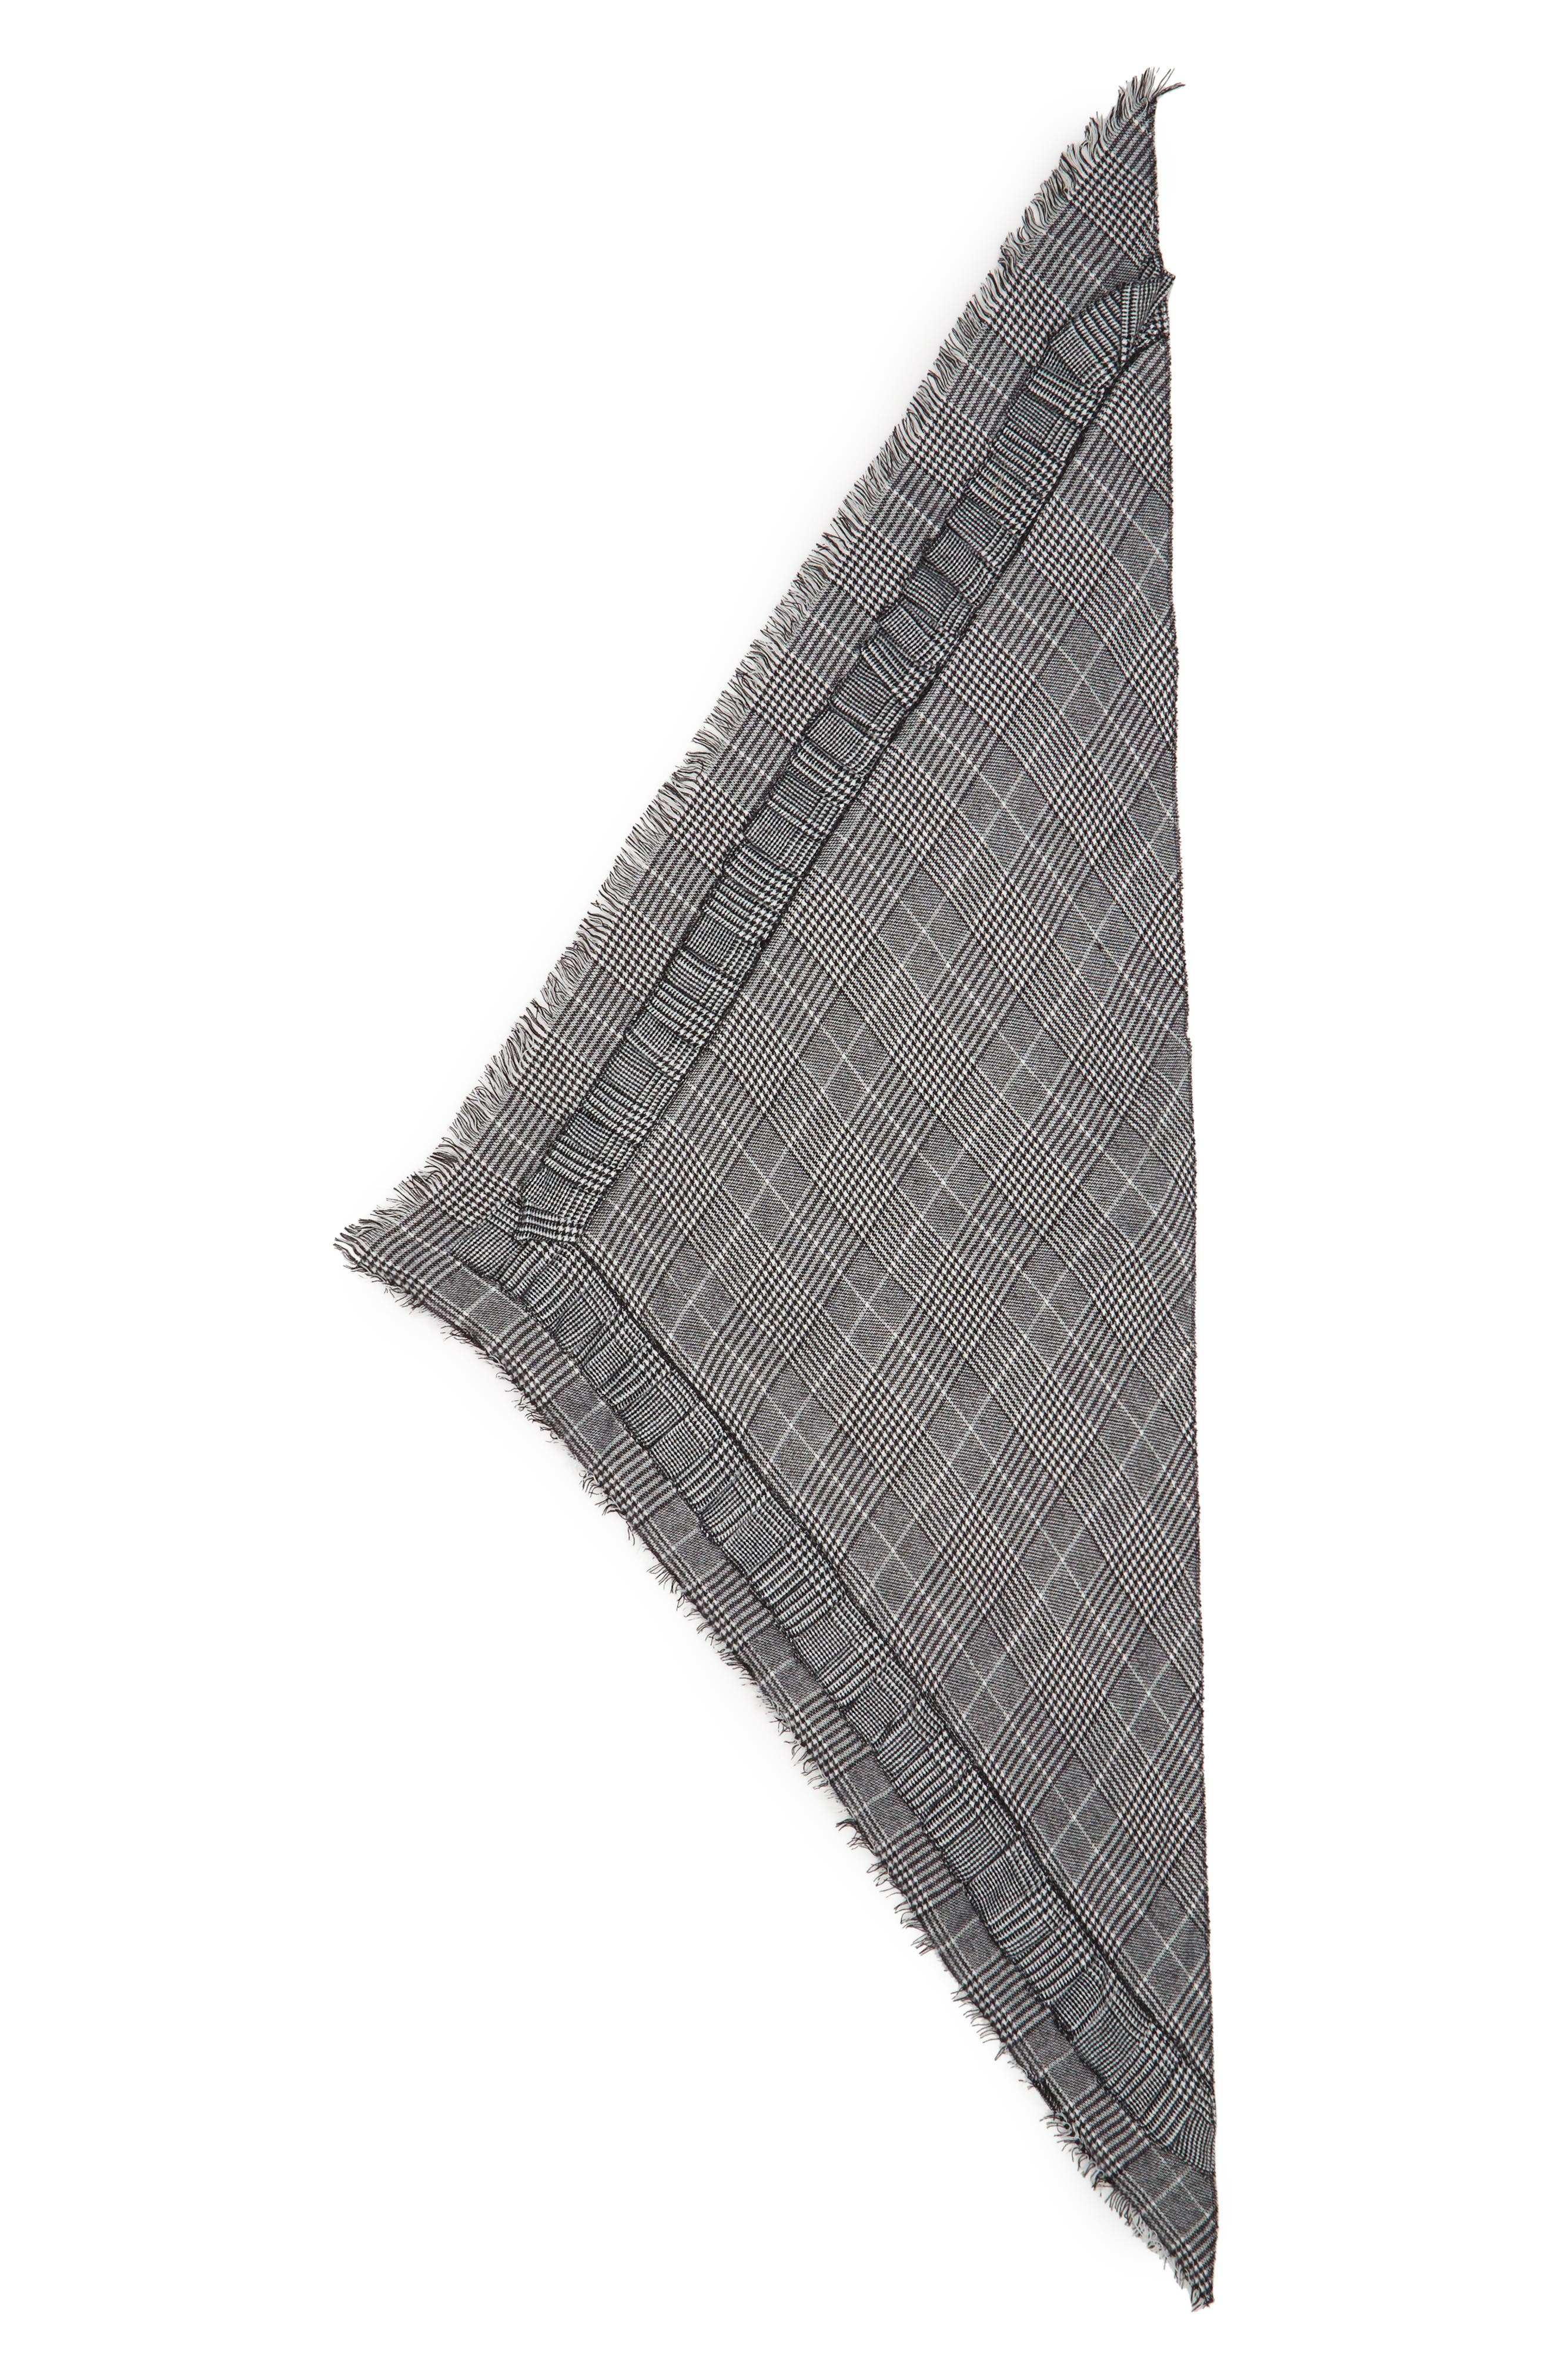 Ruffle Plaid Triangle Scarf,                             Alternate thumbnail 2, color,                             001